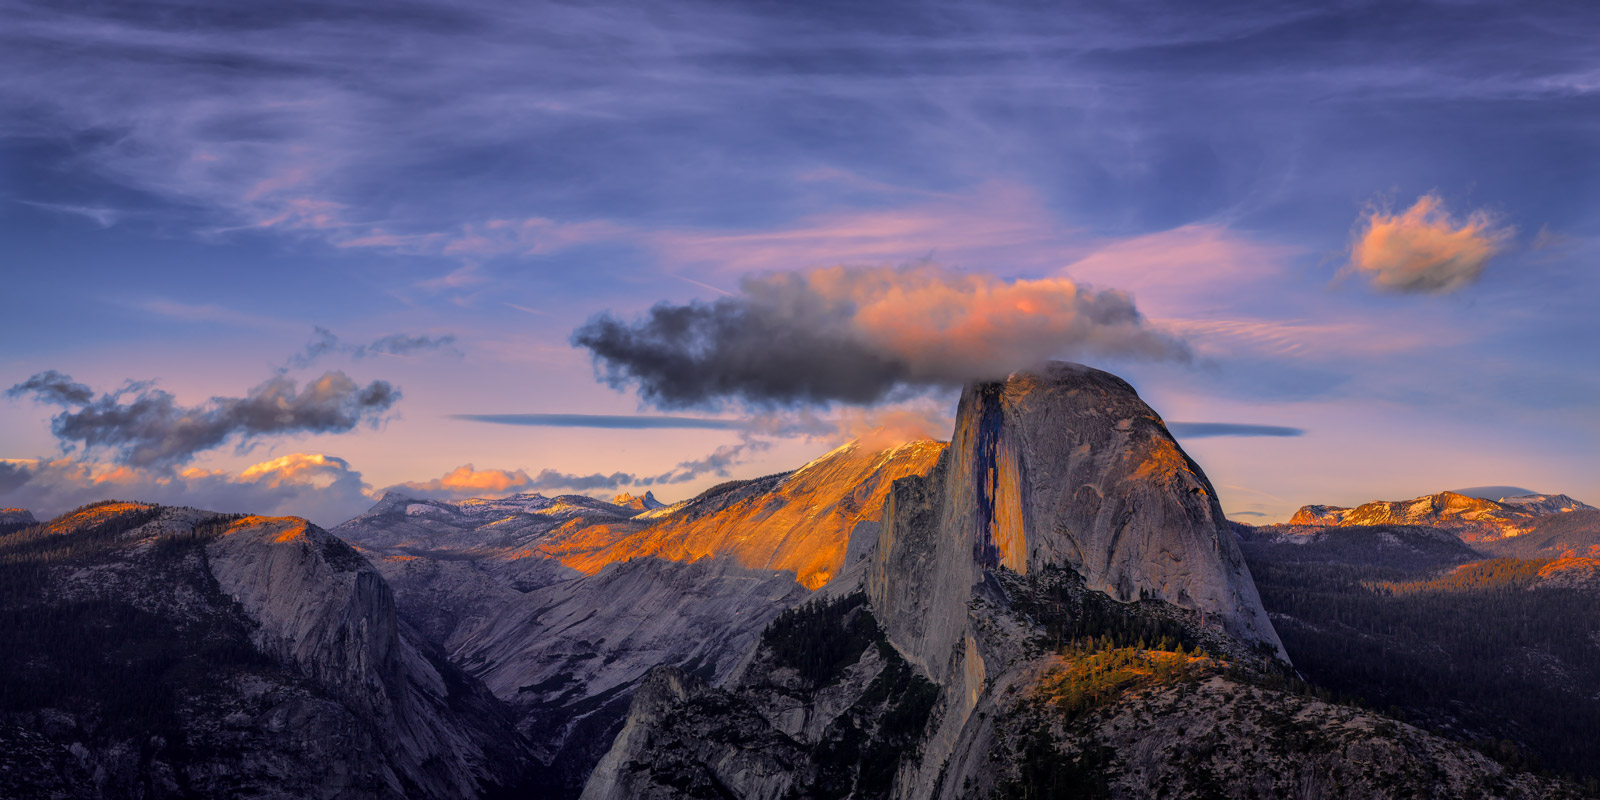 California, Yosemite, Half Dome, Sunset